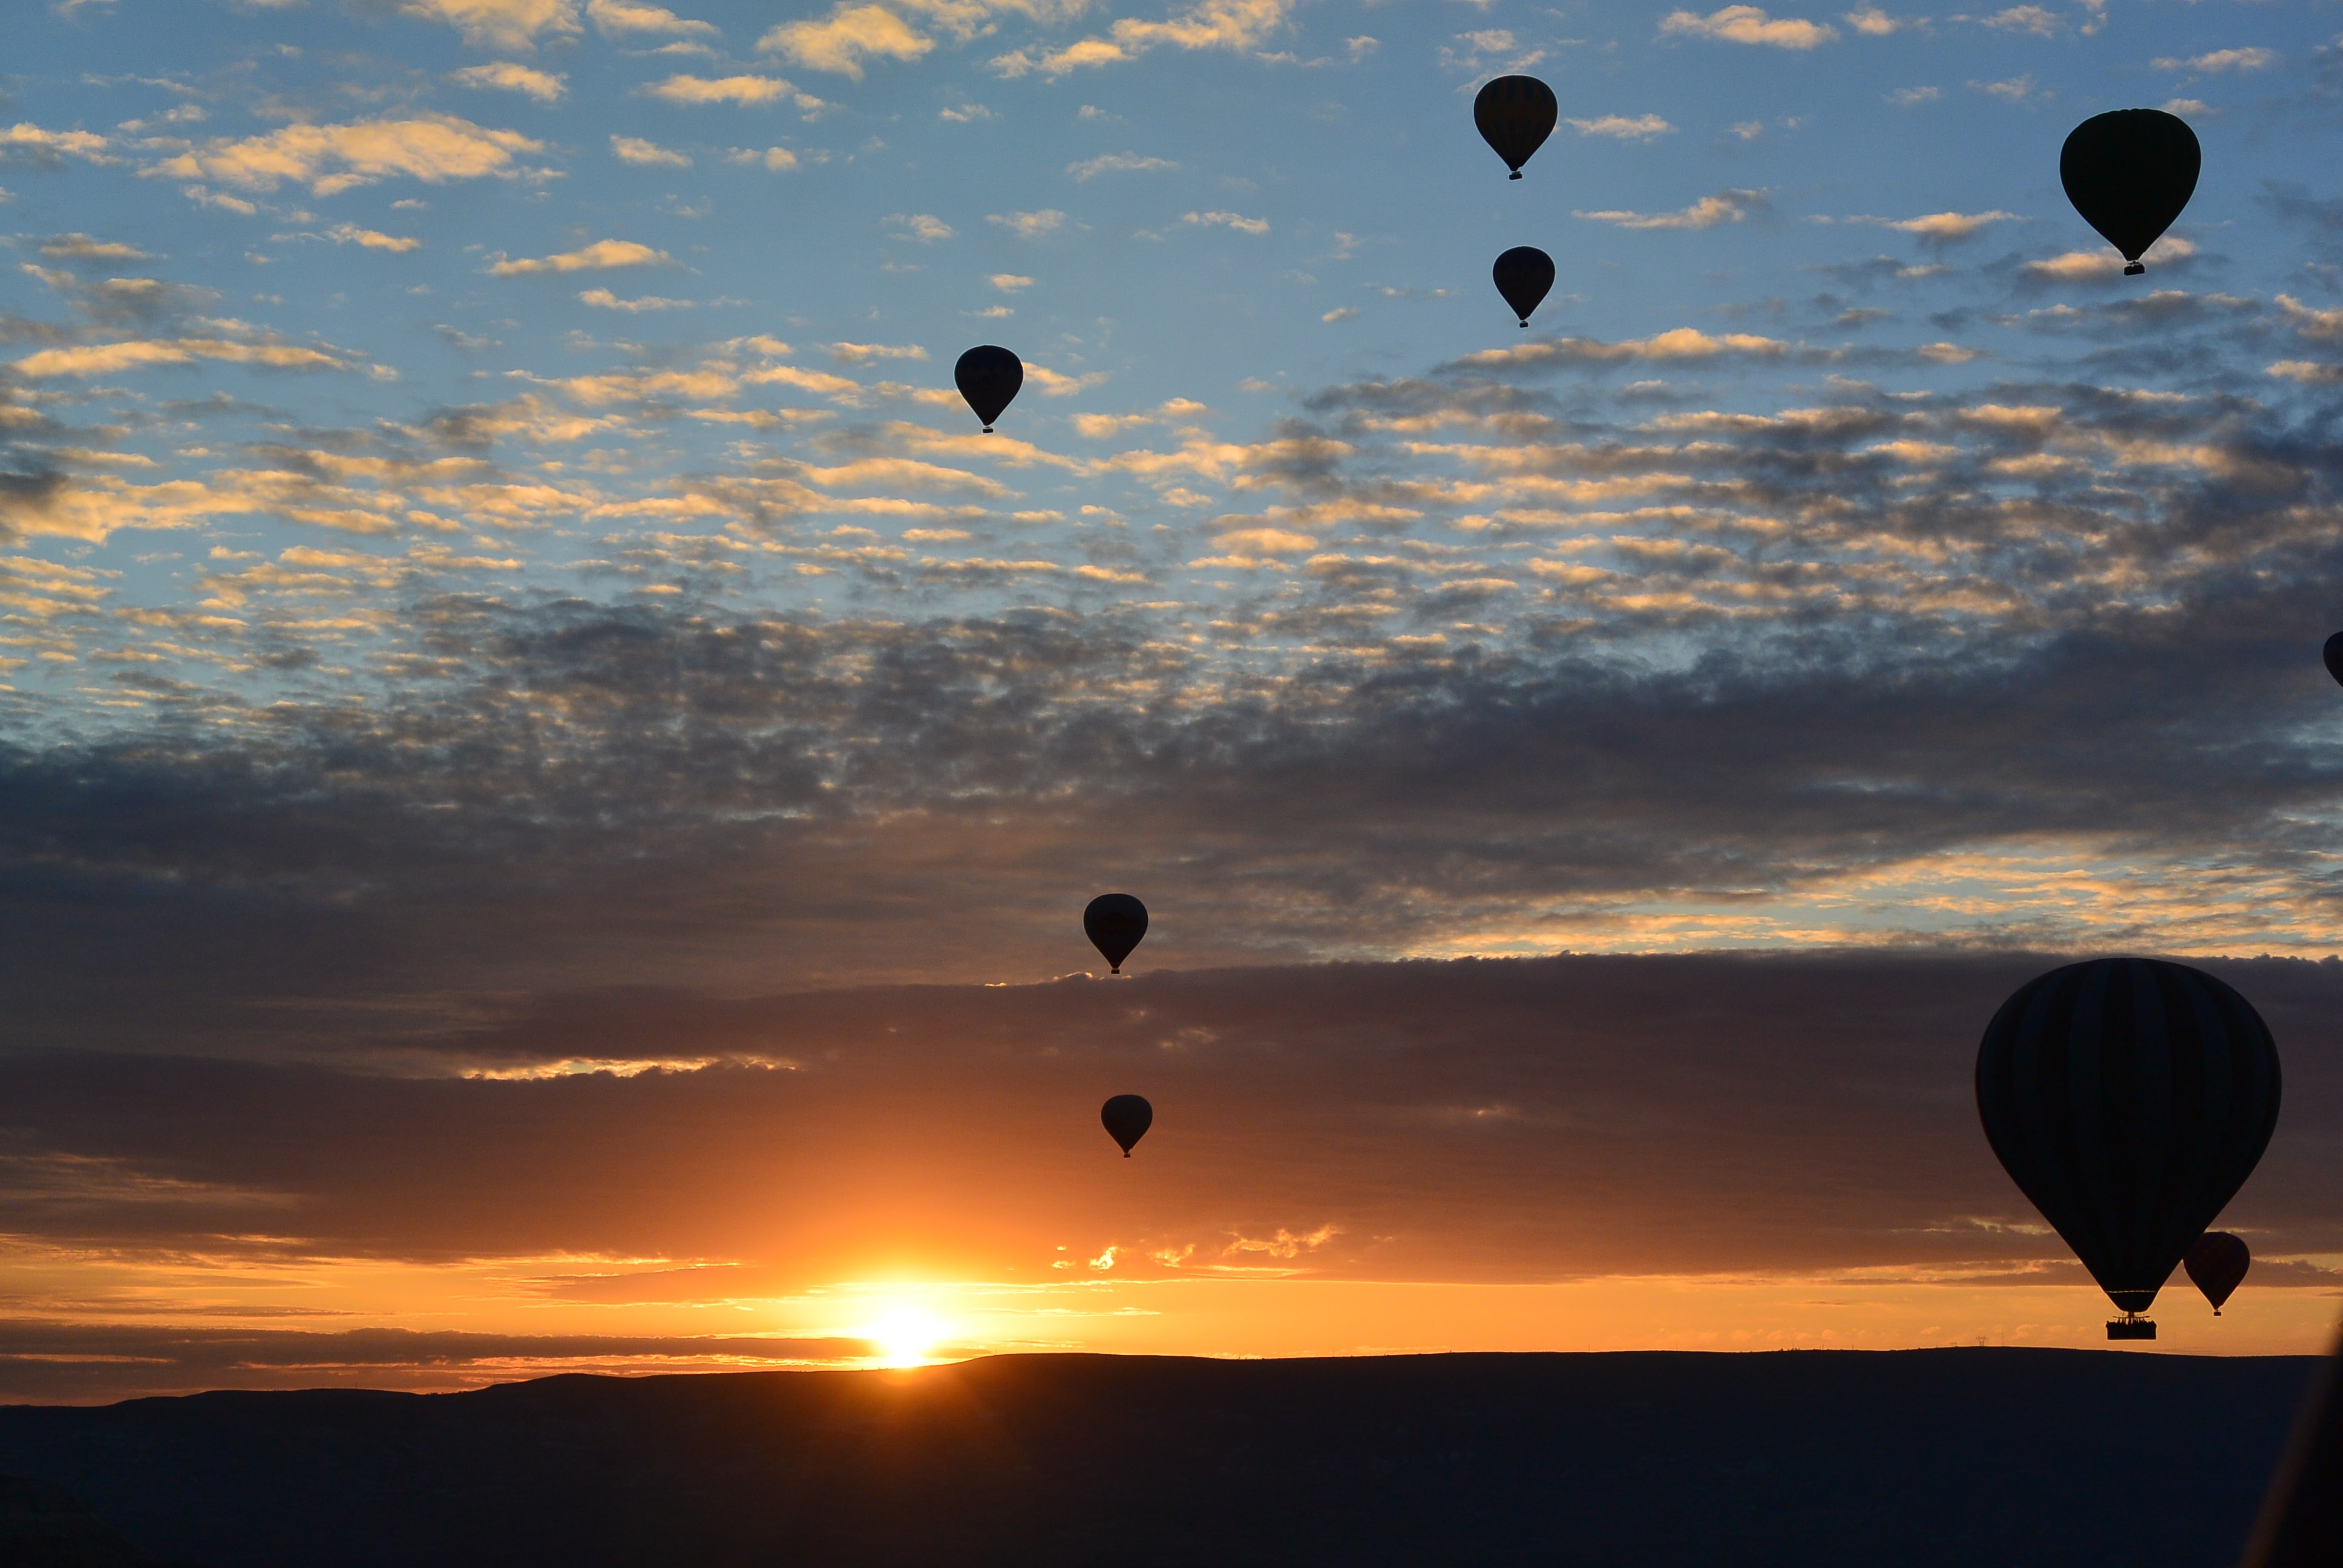 silhouette photo of hot air balloons